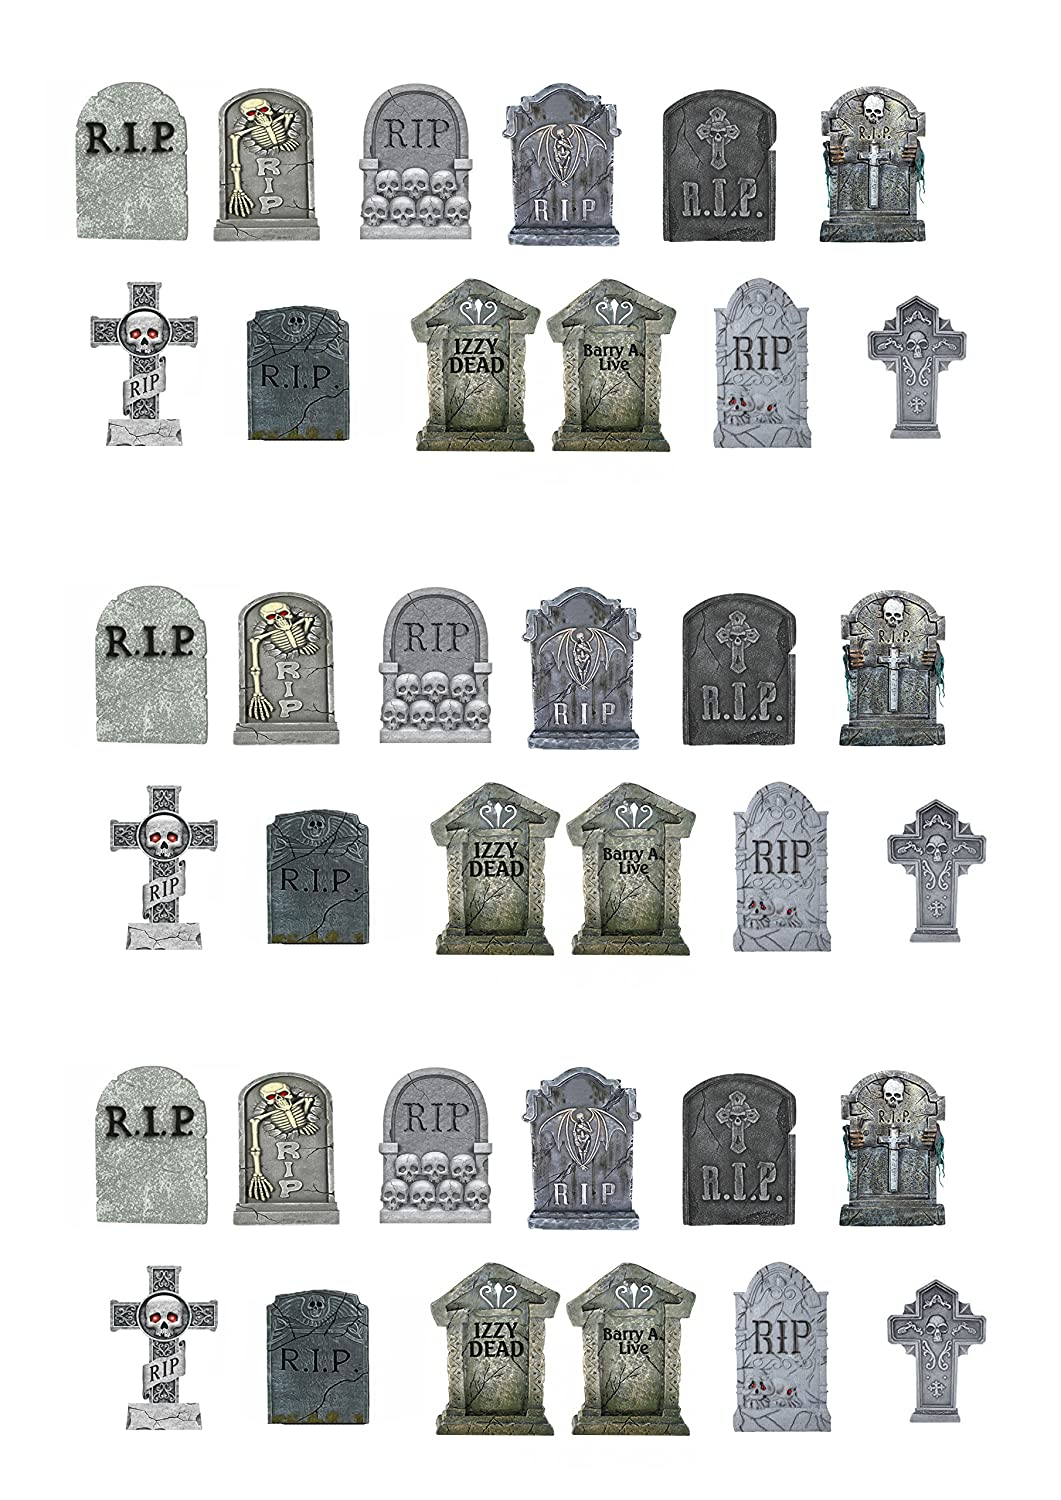 36 Stand Up Halloween Gravestones Premium Edible Wafer Paper Cake Toppers Decorations Top That